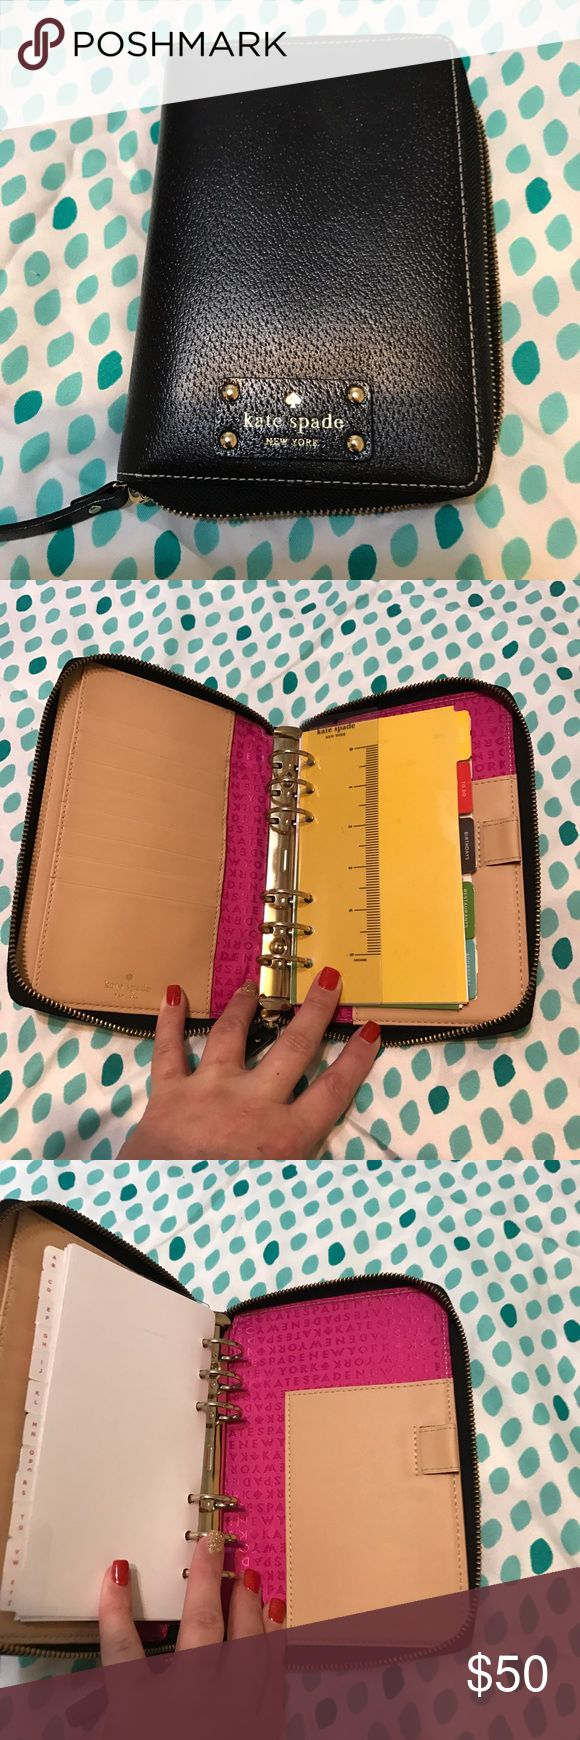 Kate Spade Wellesley planner Brand new condition. Needs 2017 calendar inserts. Black. kate spade Accessories